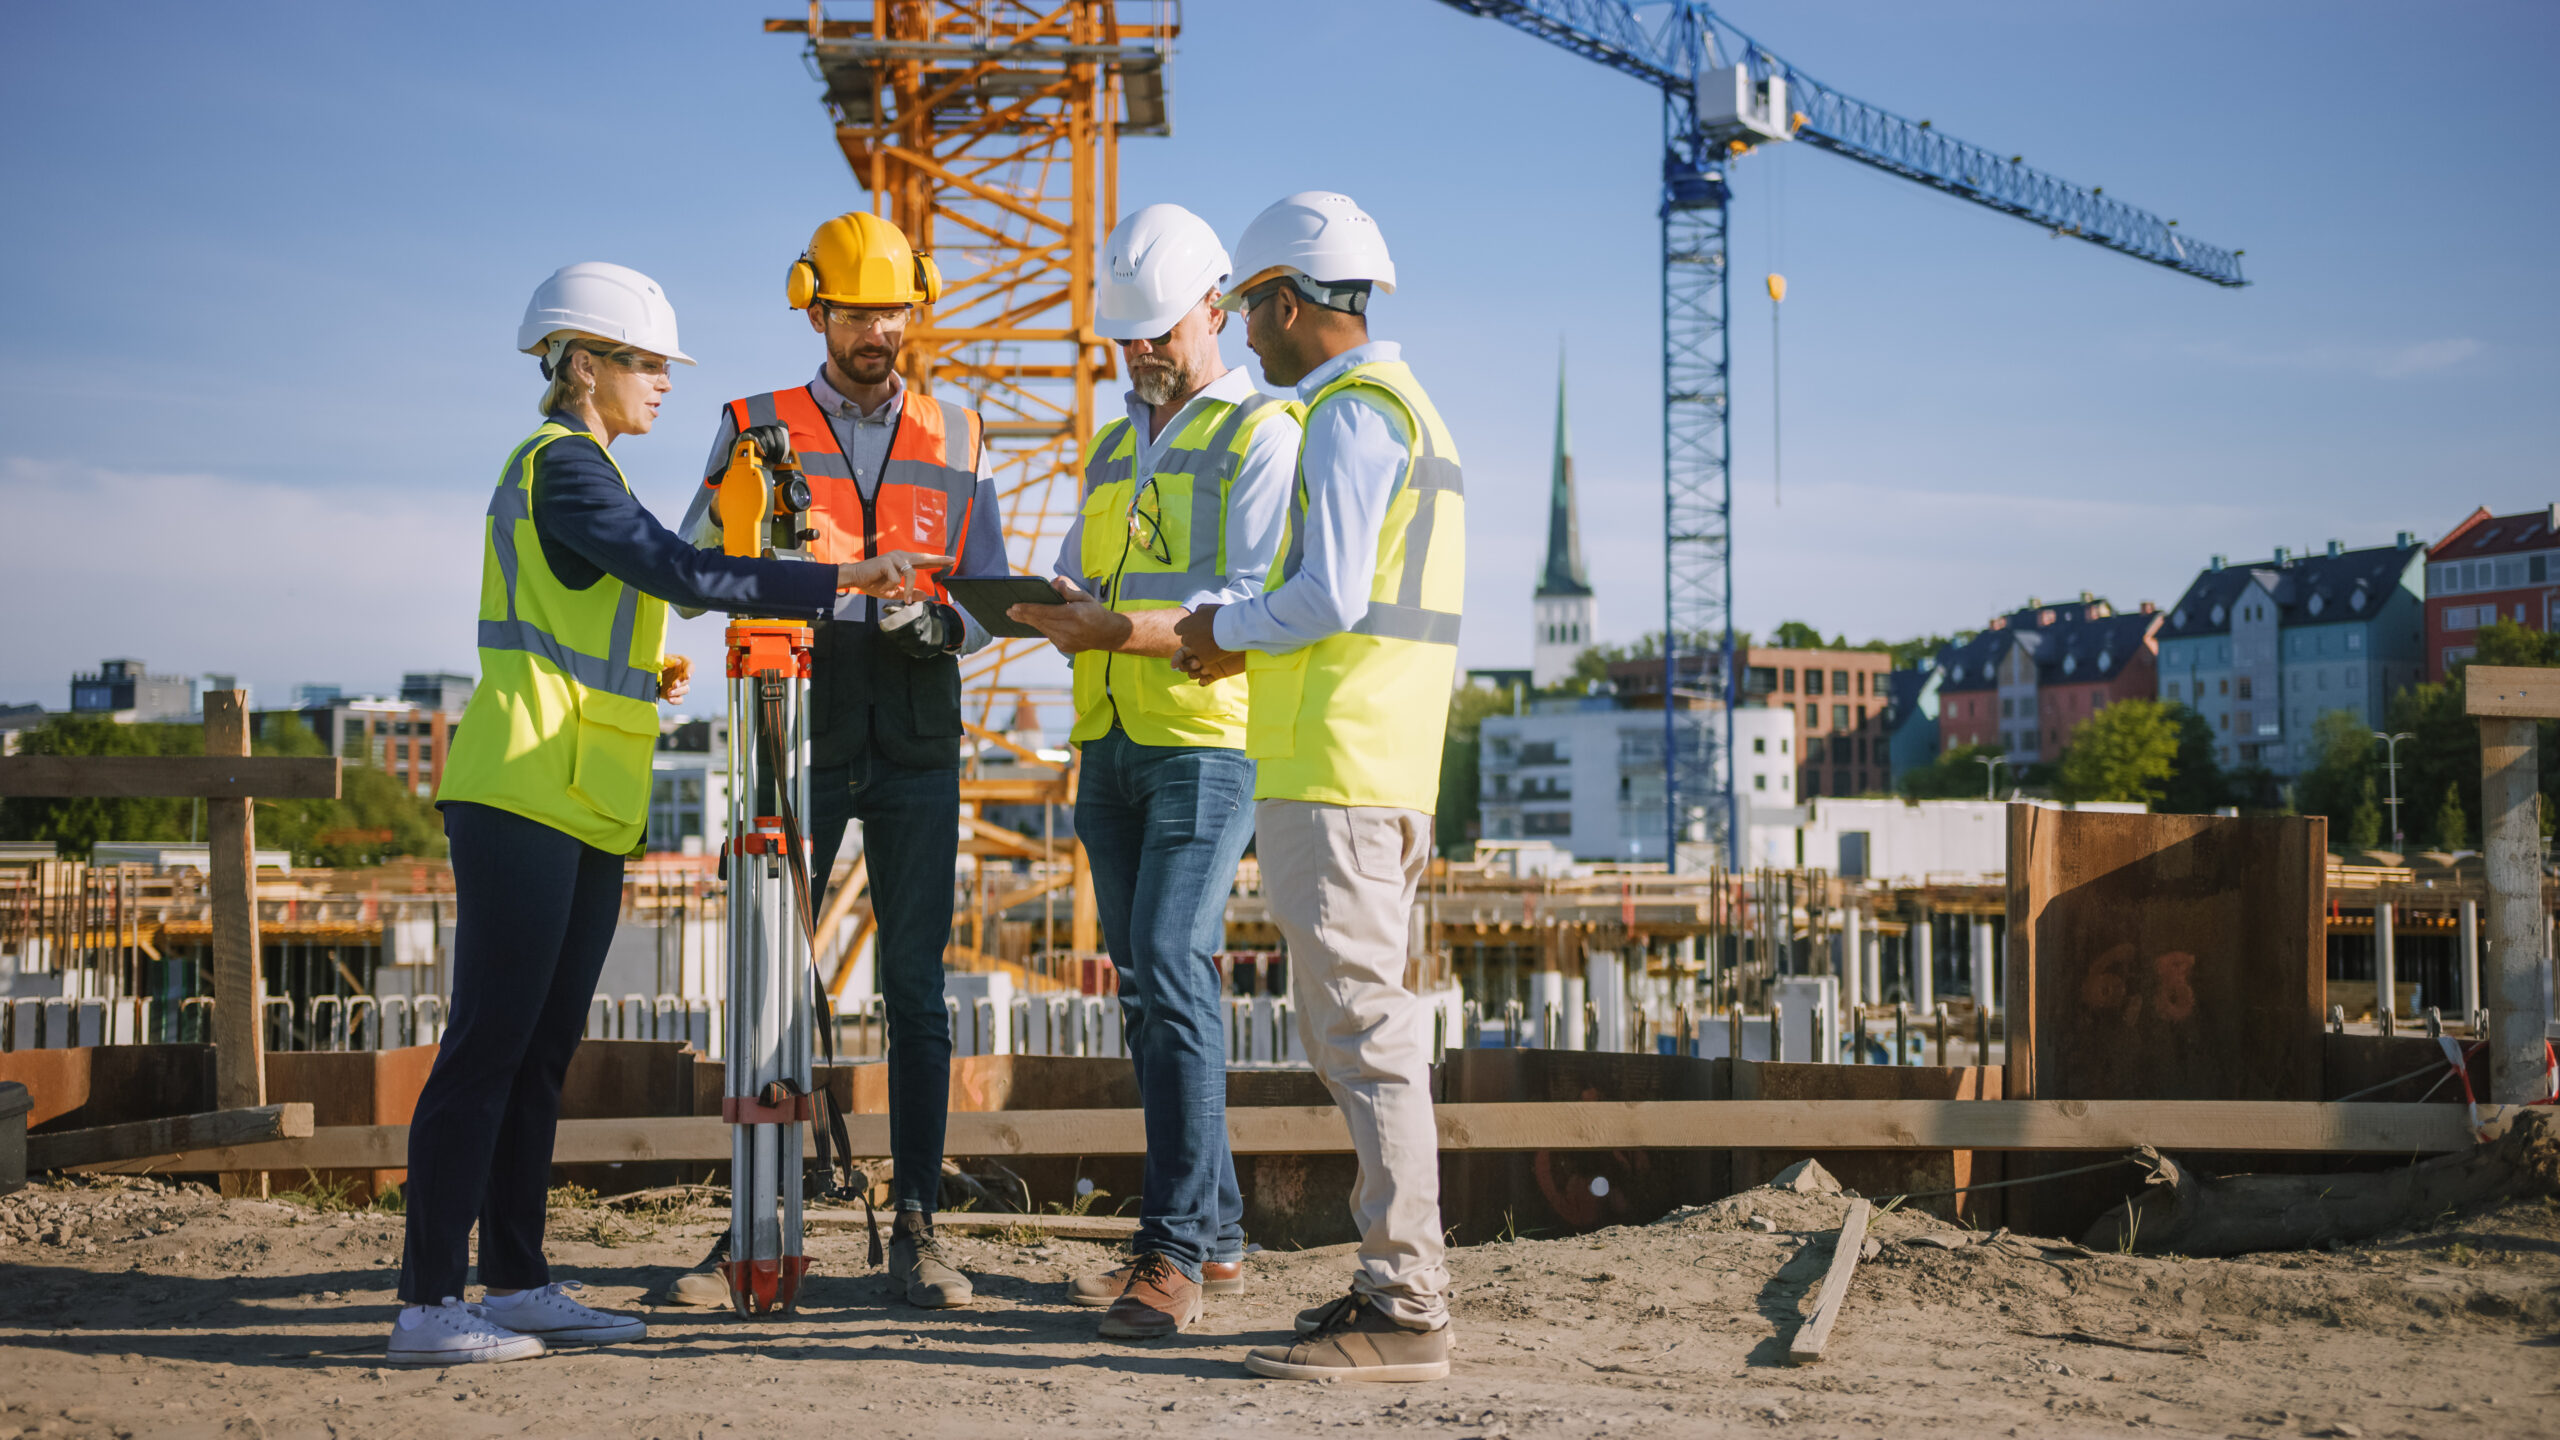 How to effectively manage assets across job sites with telematics